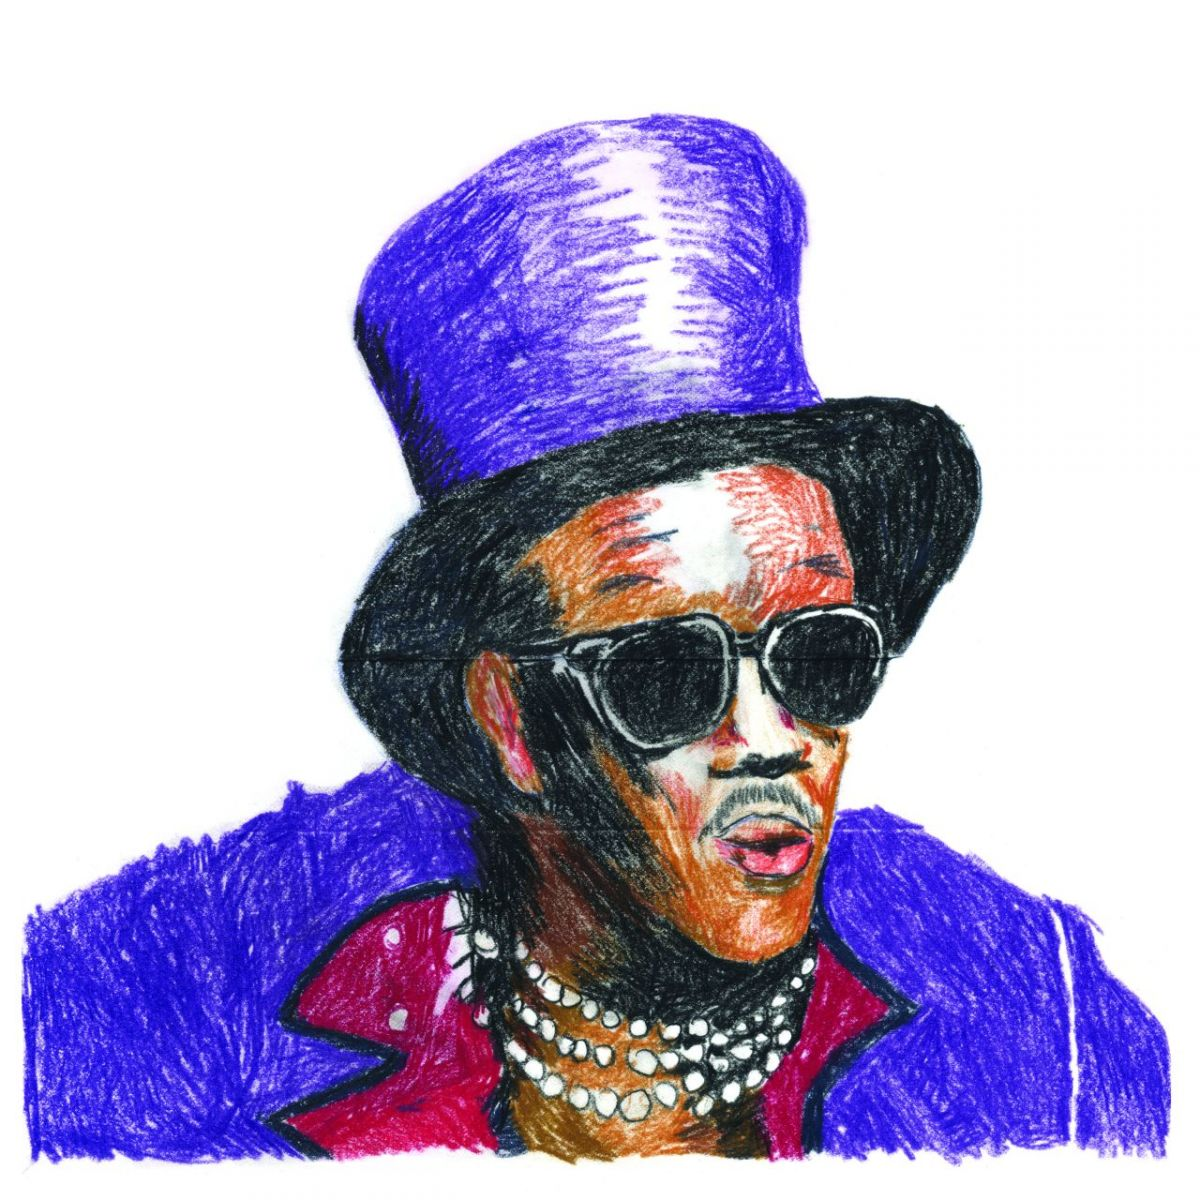 Bernie Worrell drawing by DB.